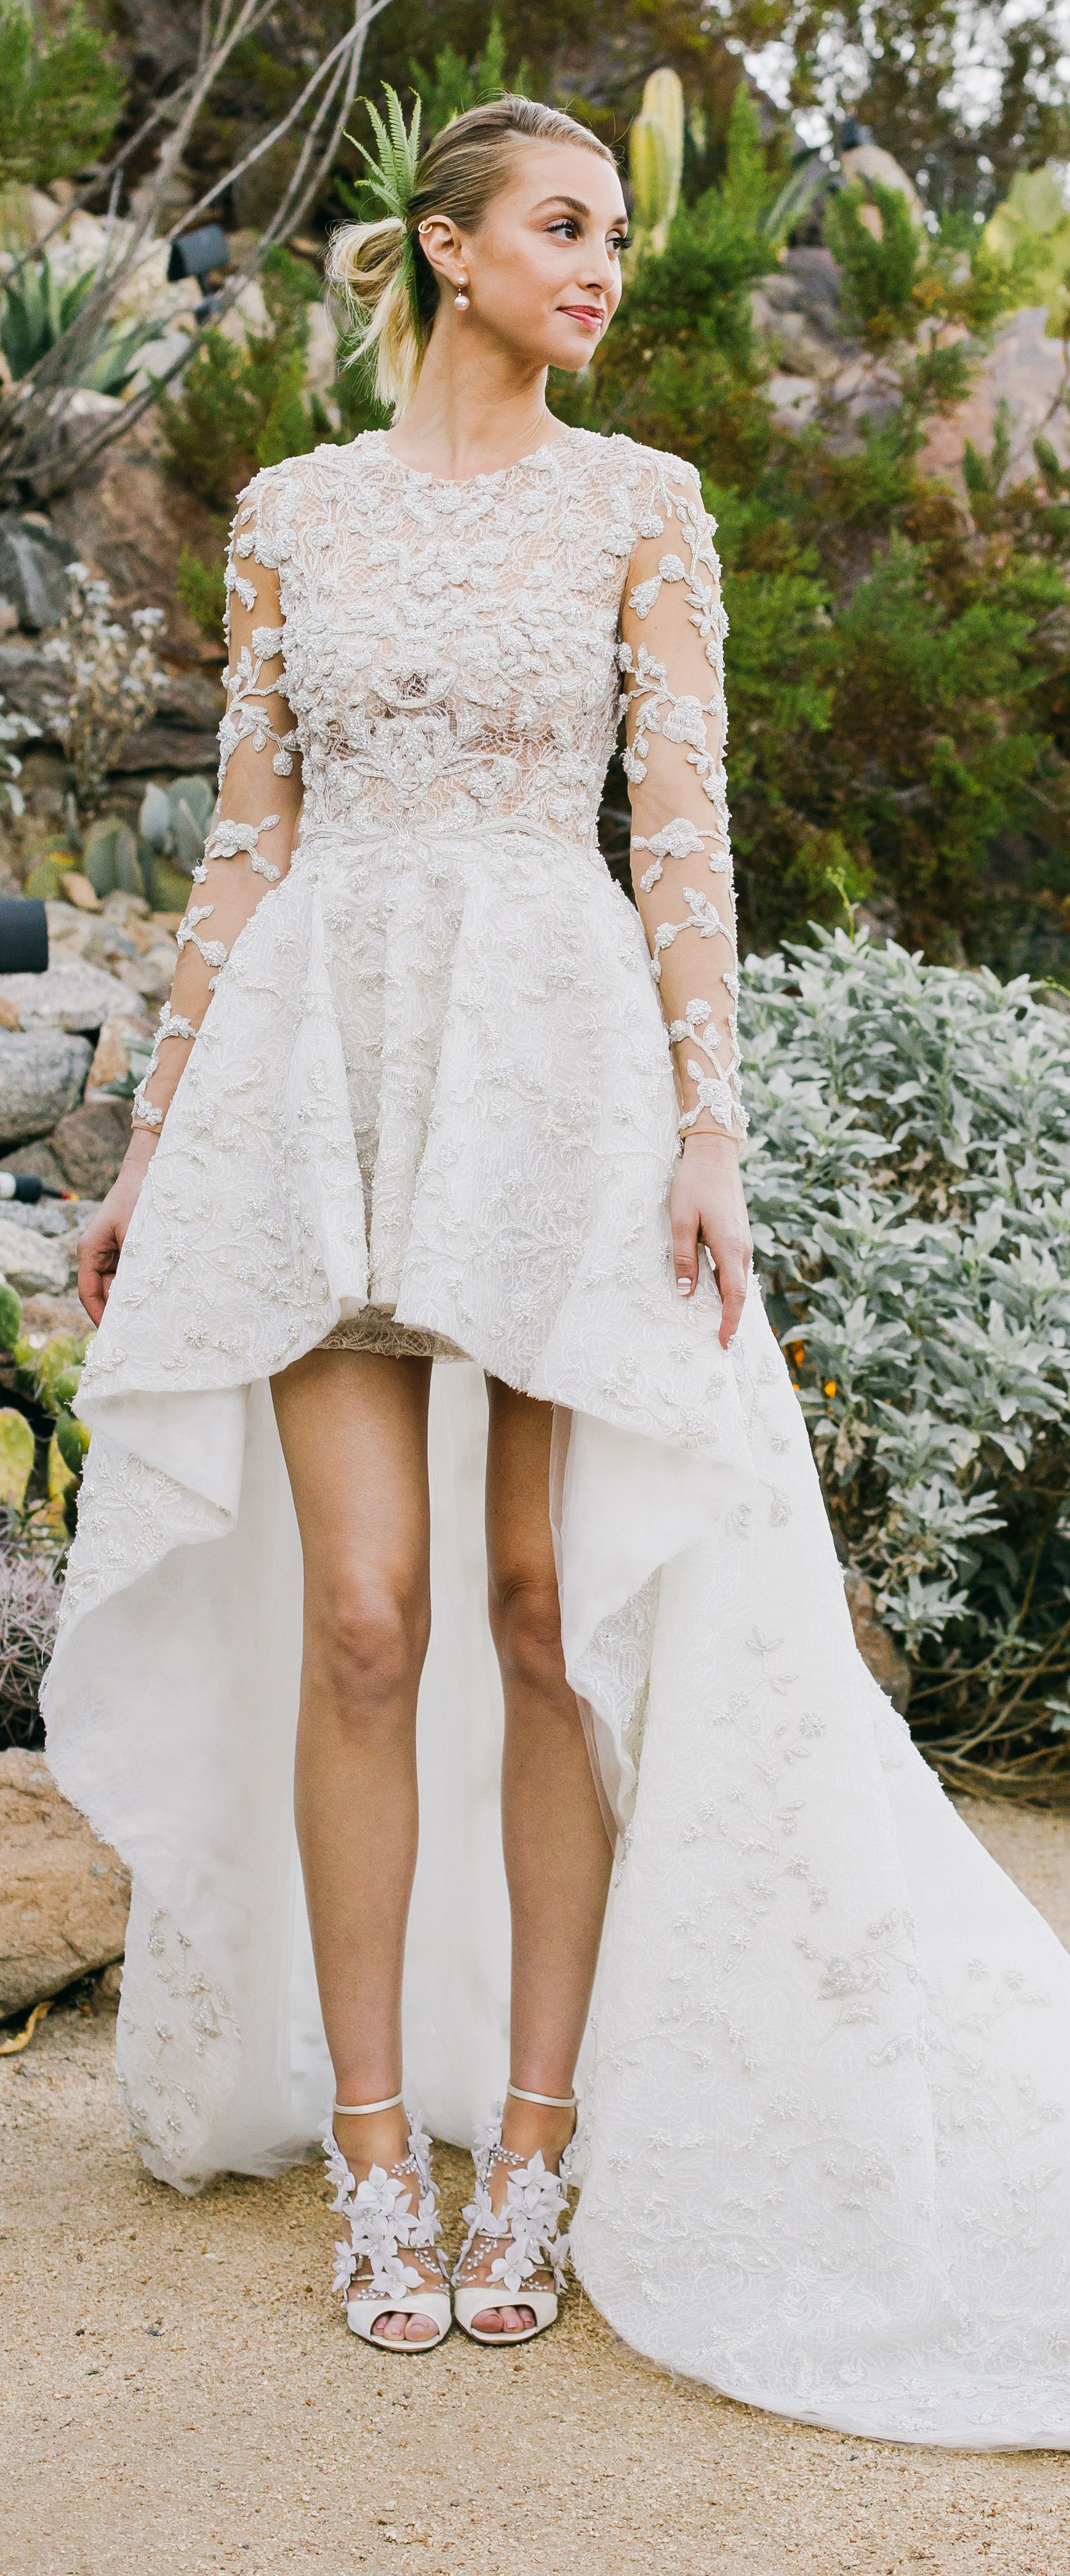 Whitney Port S Wedding Gown Is Just What You D Expect Until You See The Bottom Wedding Dresses High Low Celebrity Wedding Dresses Celebrity Wedding Gowns